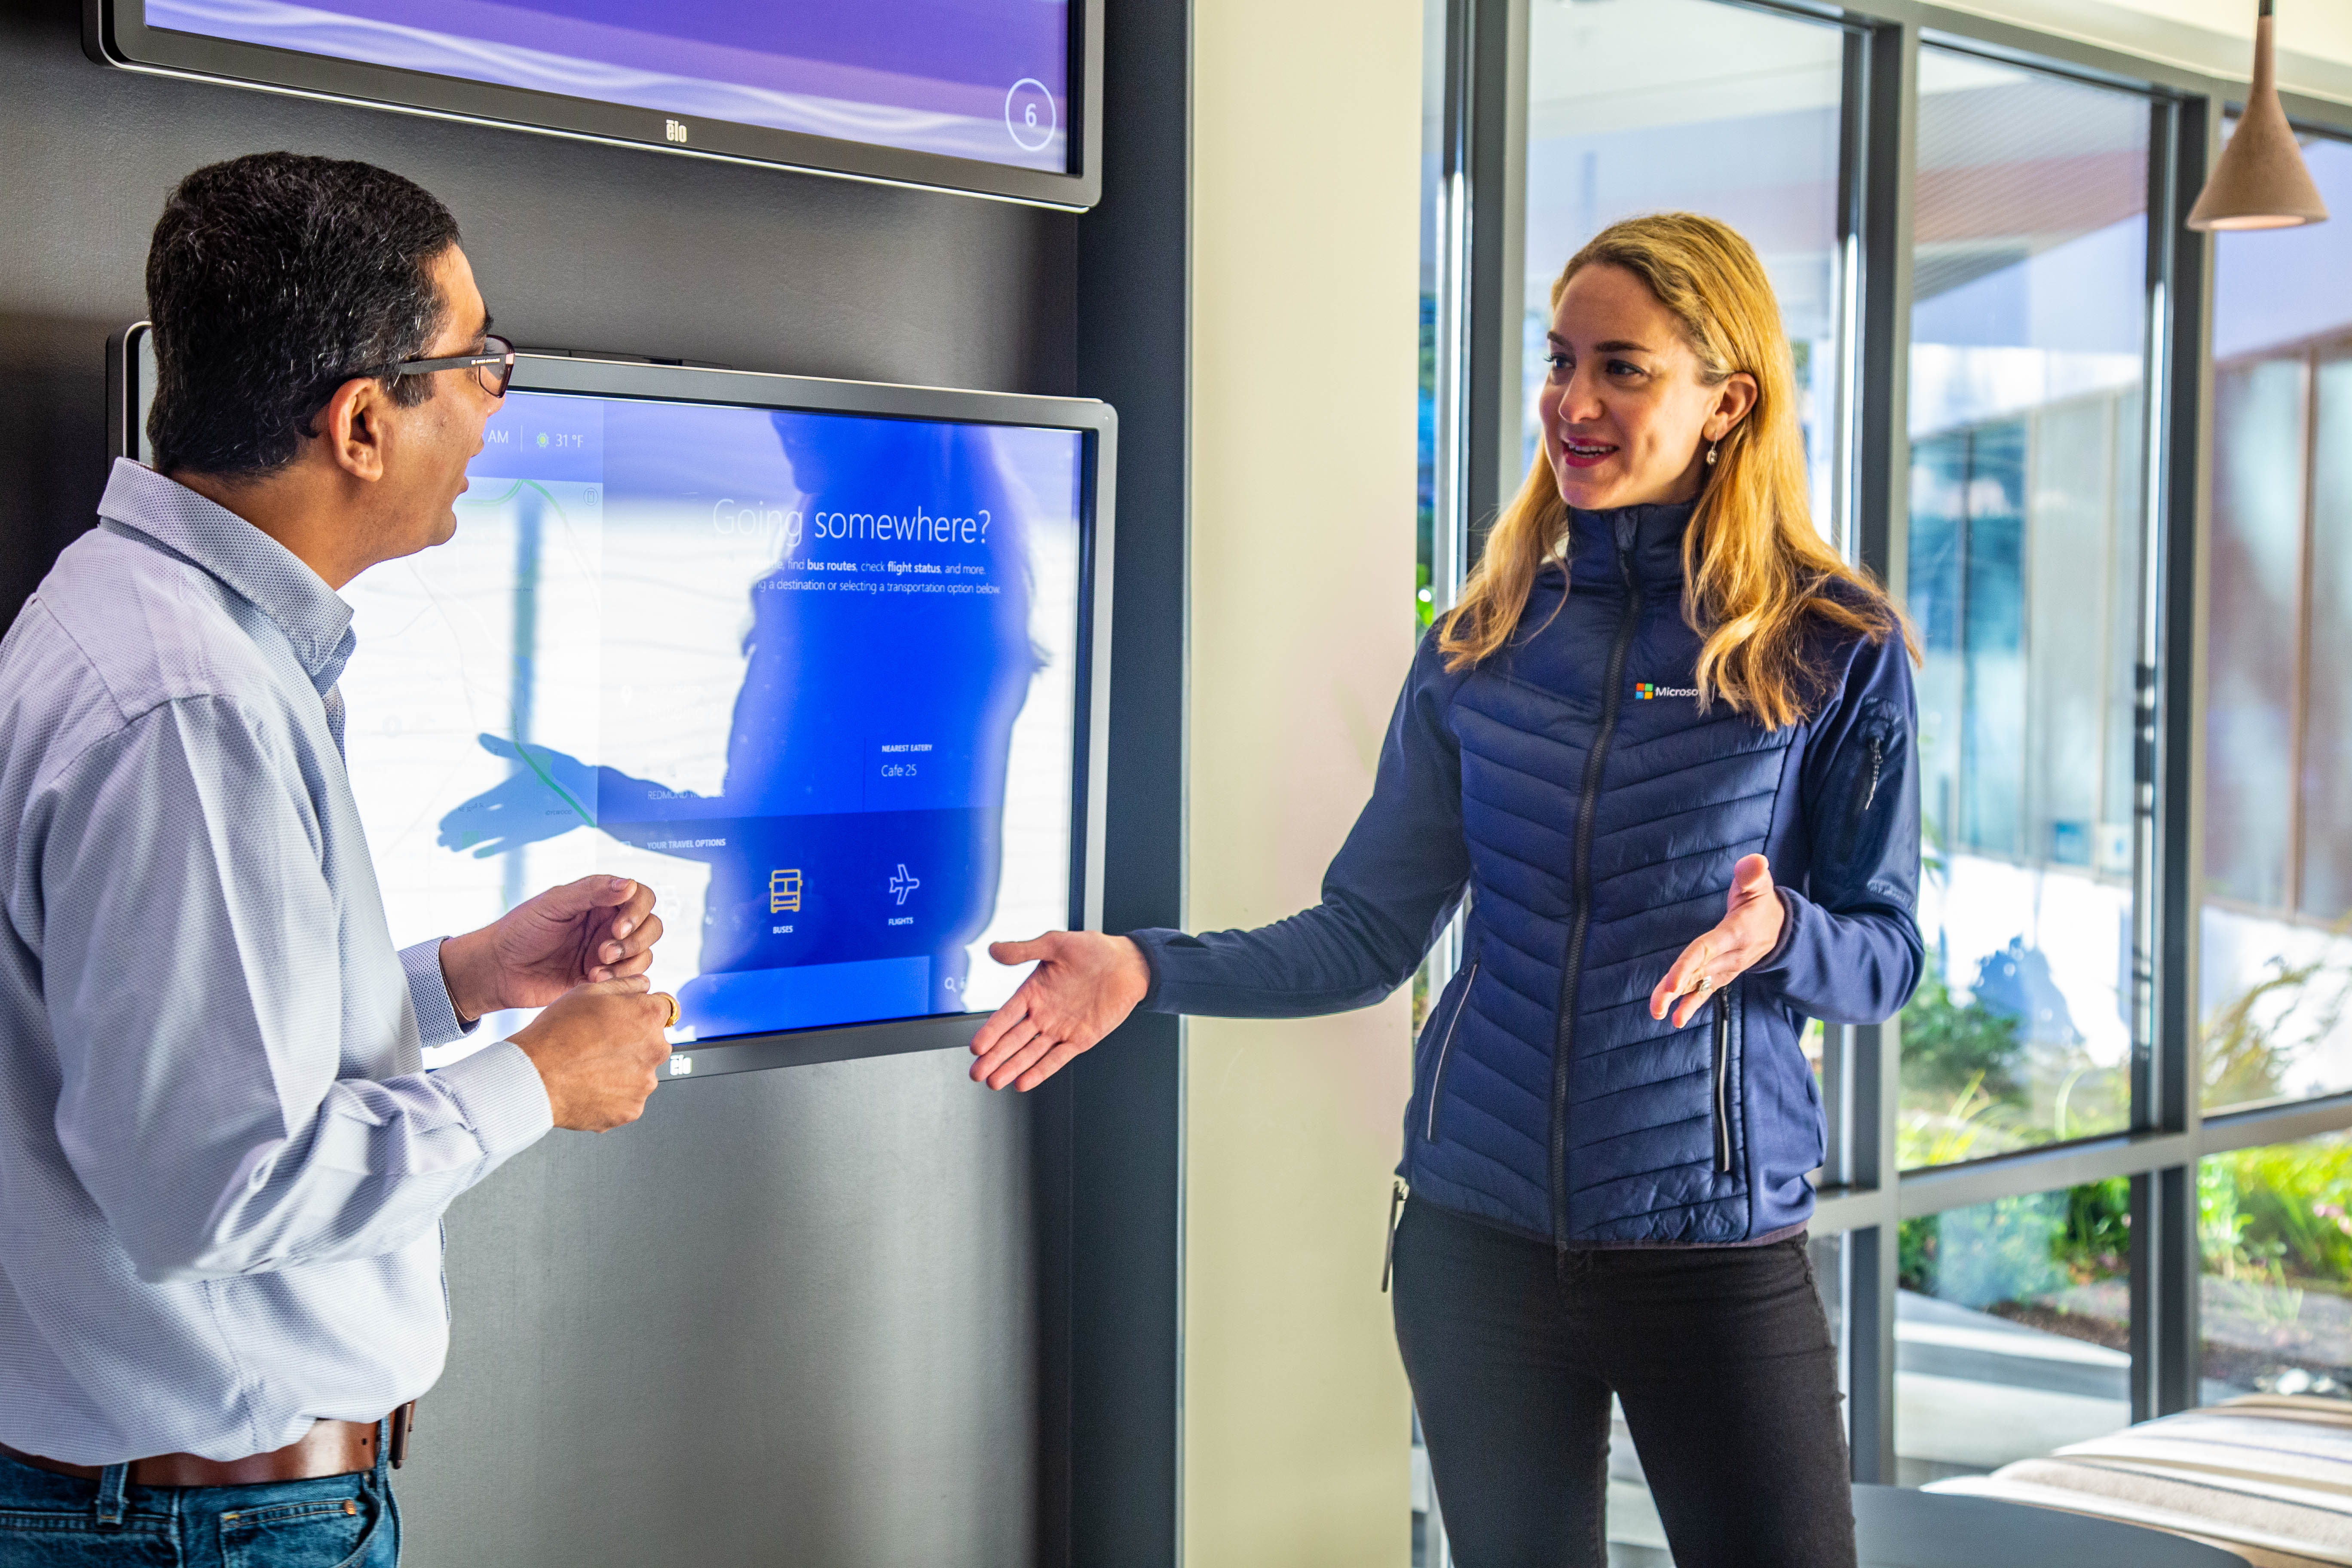 Vishu Admal and Esther Christoffersen demo a lobby experience departure module in Microsoft Building 21. They are standing in front of the screen that they can use to book a shuttle and get other information about how to get to another building.